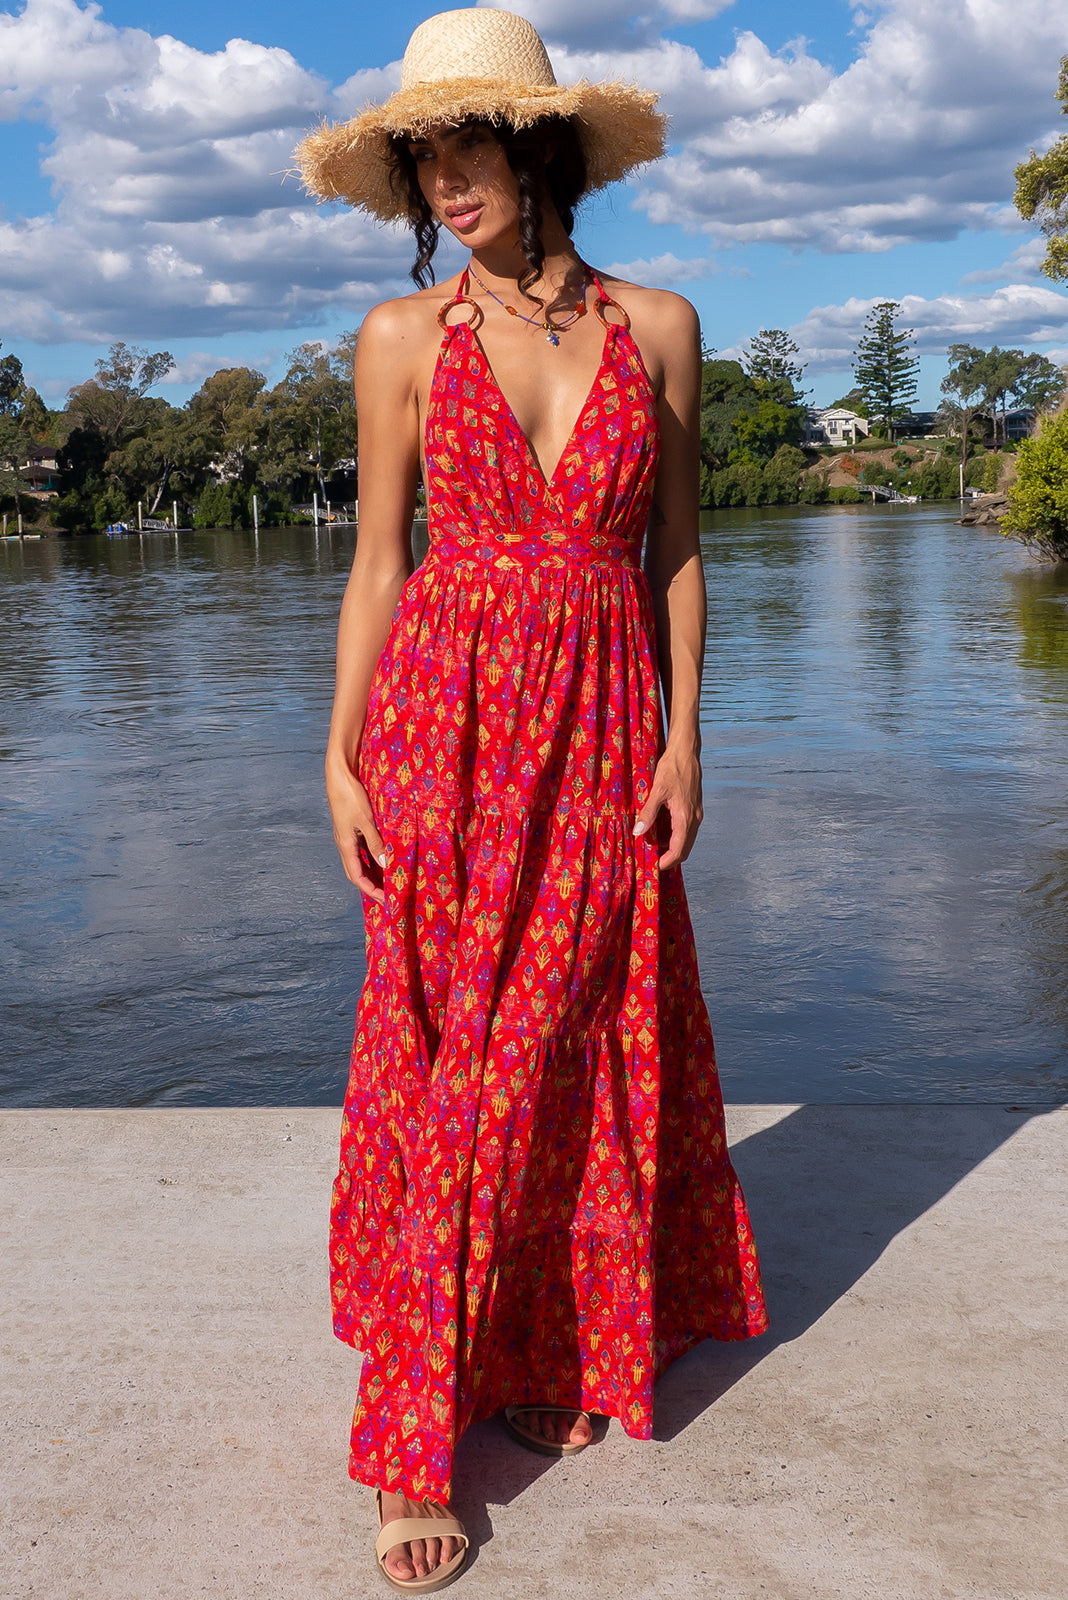 The Charlie Flame Aztec Maxi Dress is a backless dress featuring halter neck with tie up straps and ring feature elasticated back waistband, tiered skirt, side pockets and 100% cotton in vibrant red base with wash effect & multicoloured aztec print.